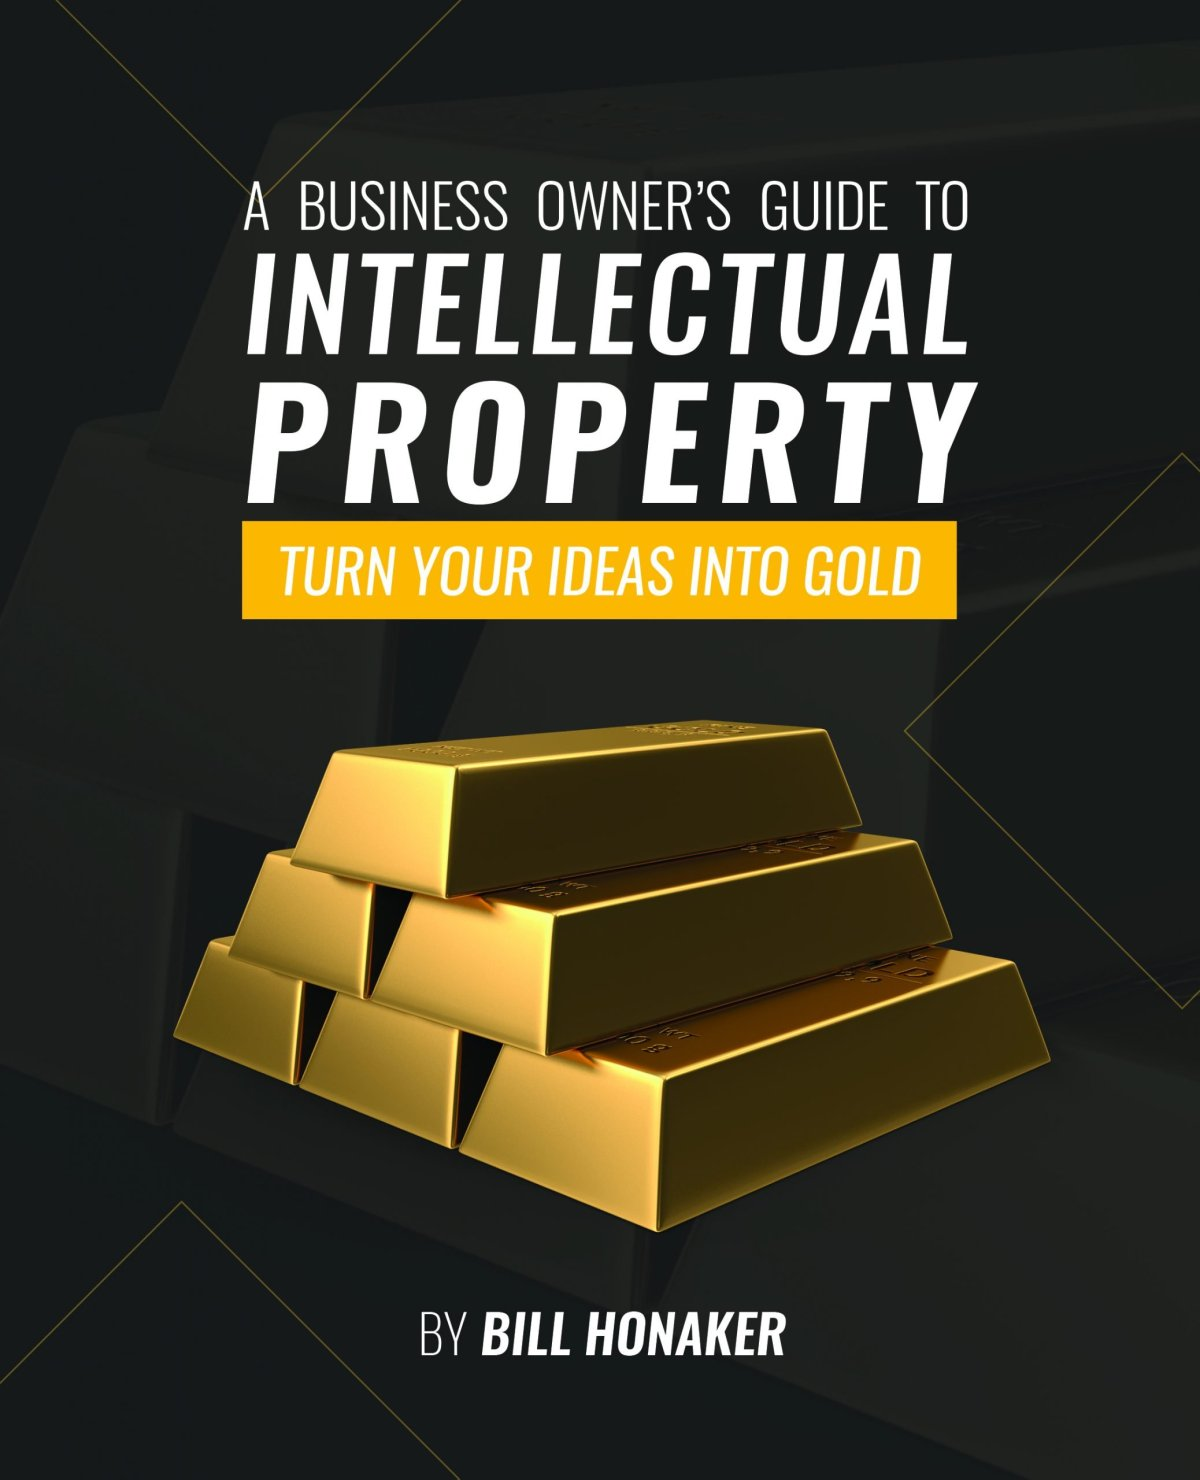 Turn Your Ideas Into Gold book cover